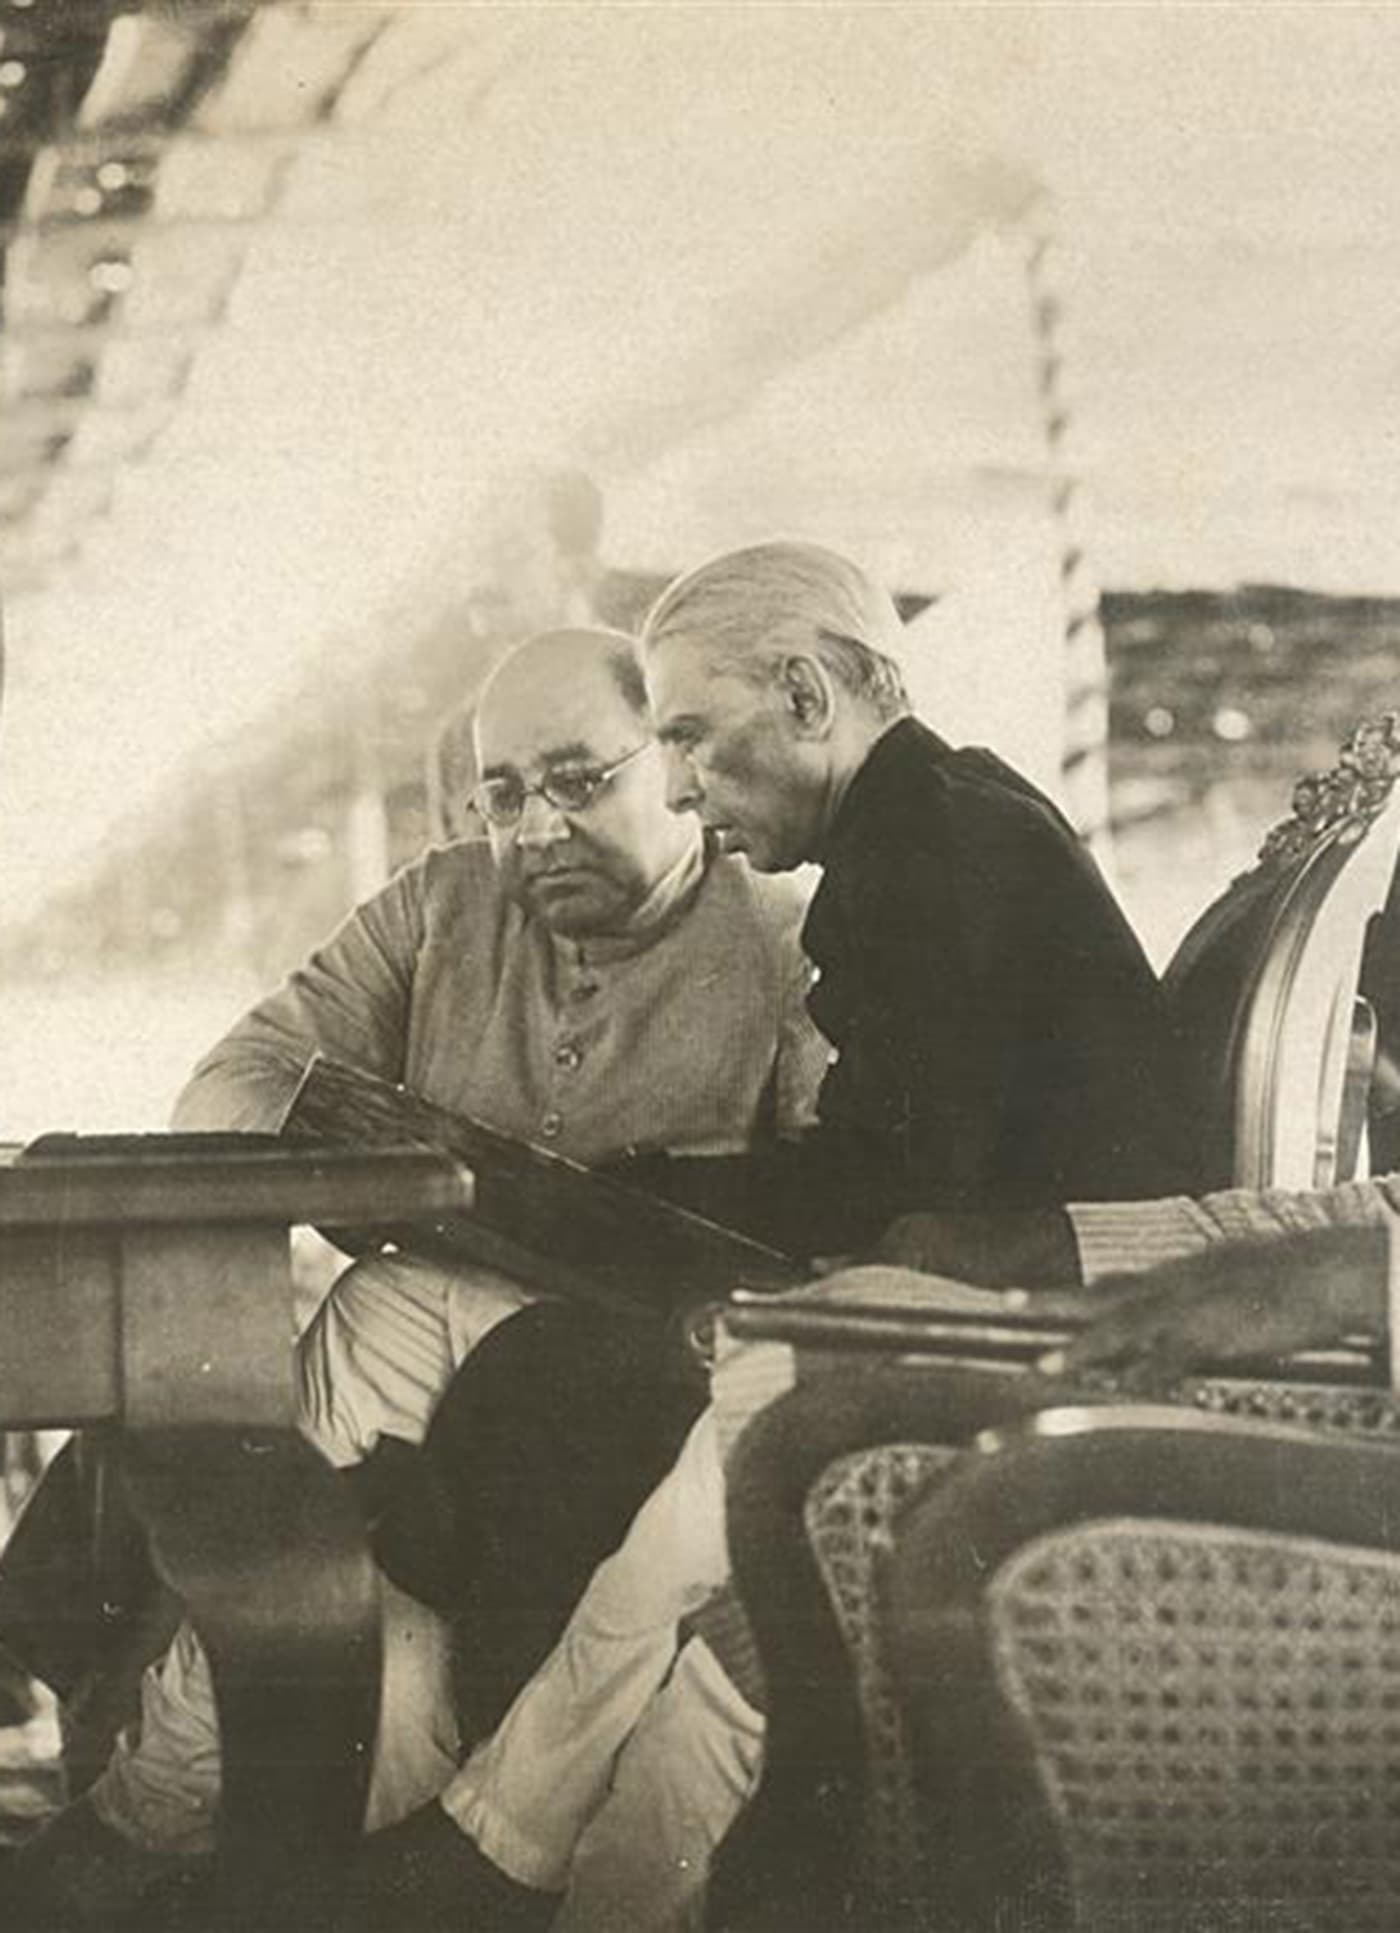 Quaid-i-Azam Mohammad Ali Jinnah and Nawabzada Liaquat Ali Khan consult on national policy in the early days of Pakistan. — Courtesy Lahore Museum Archives